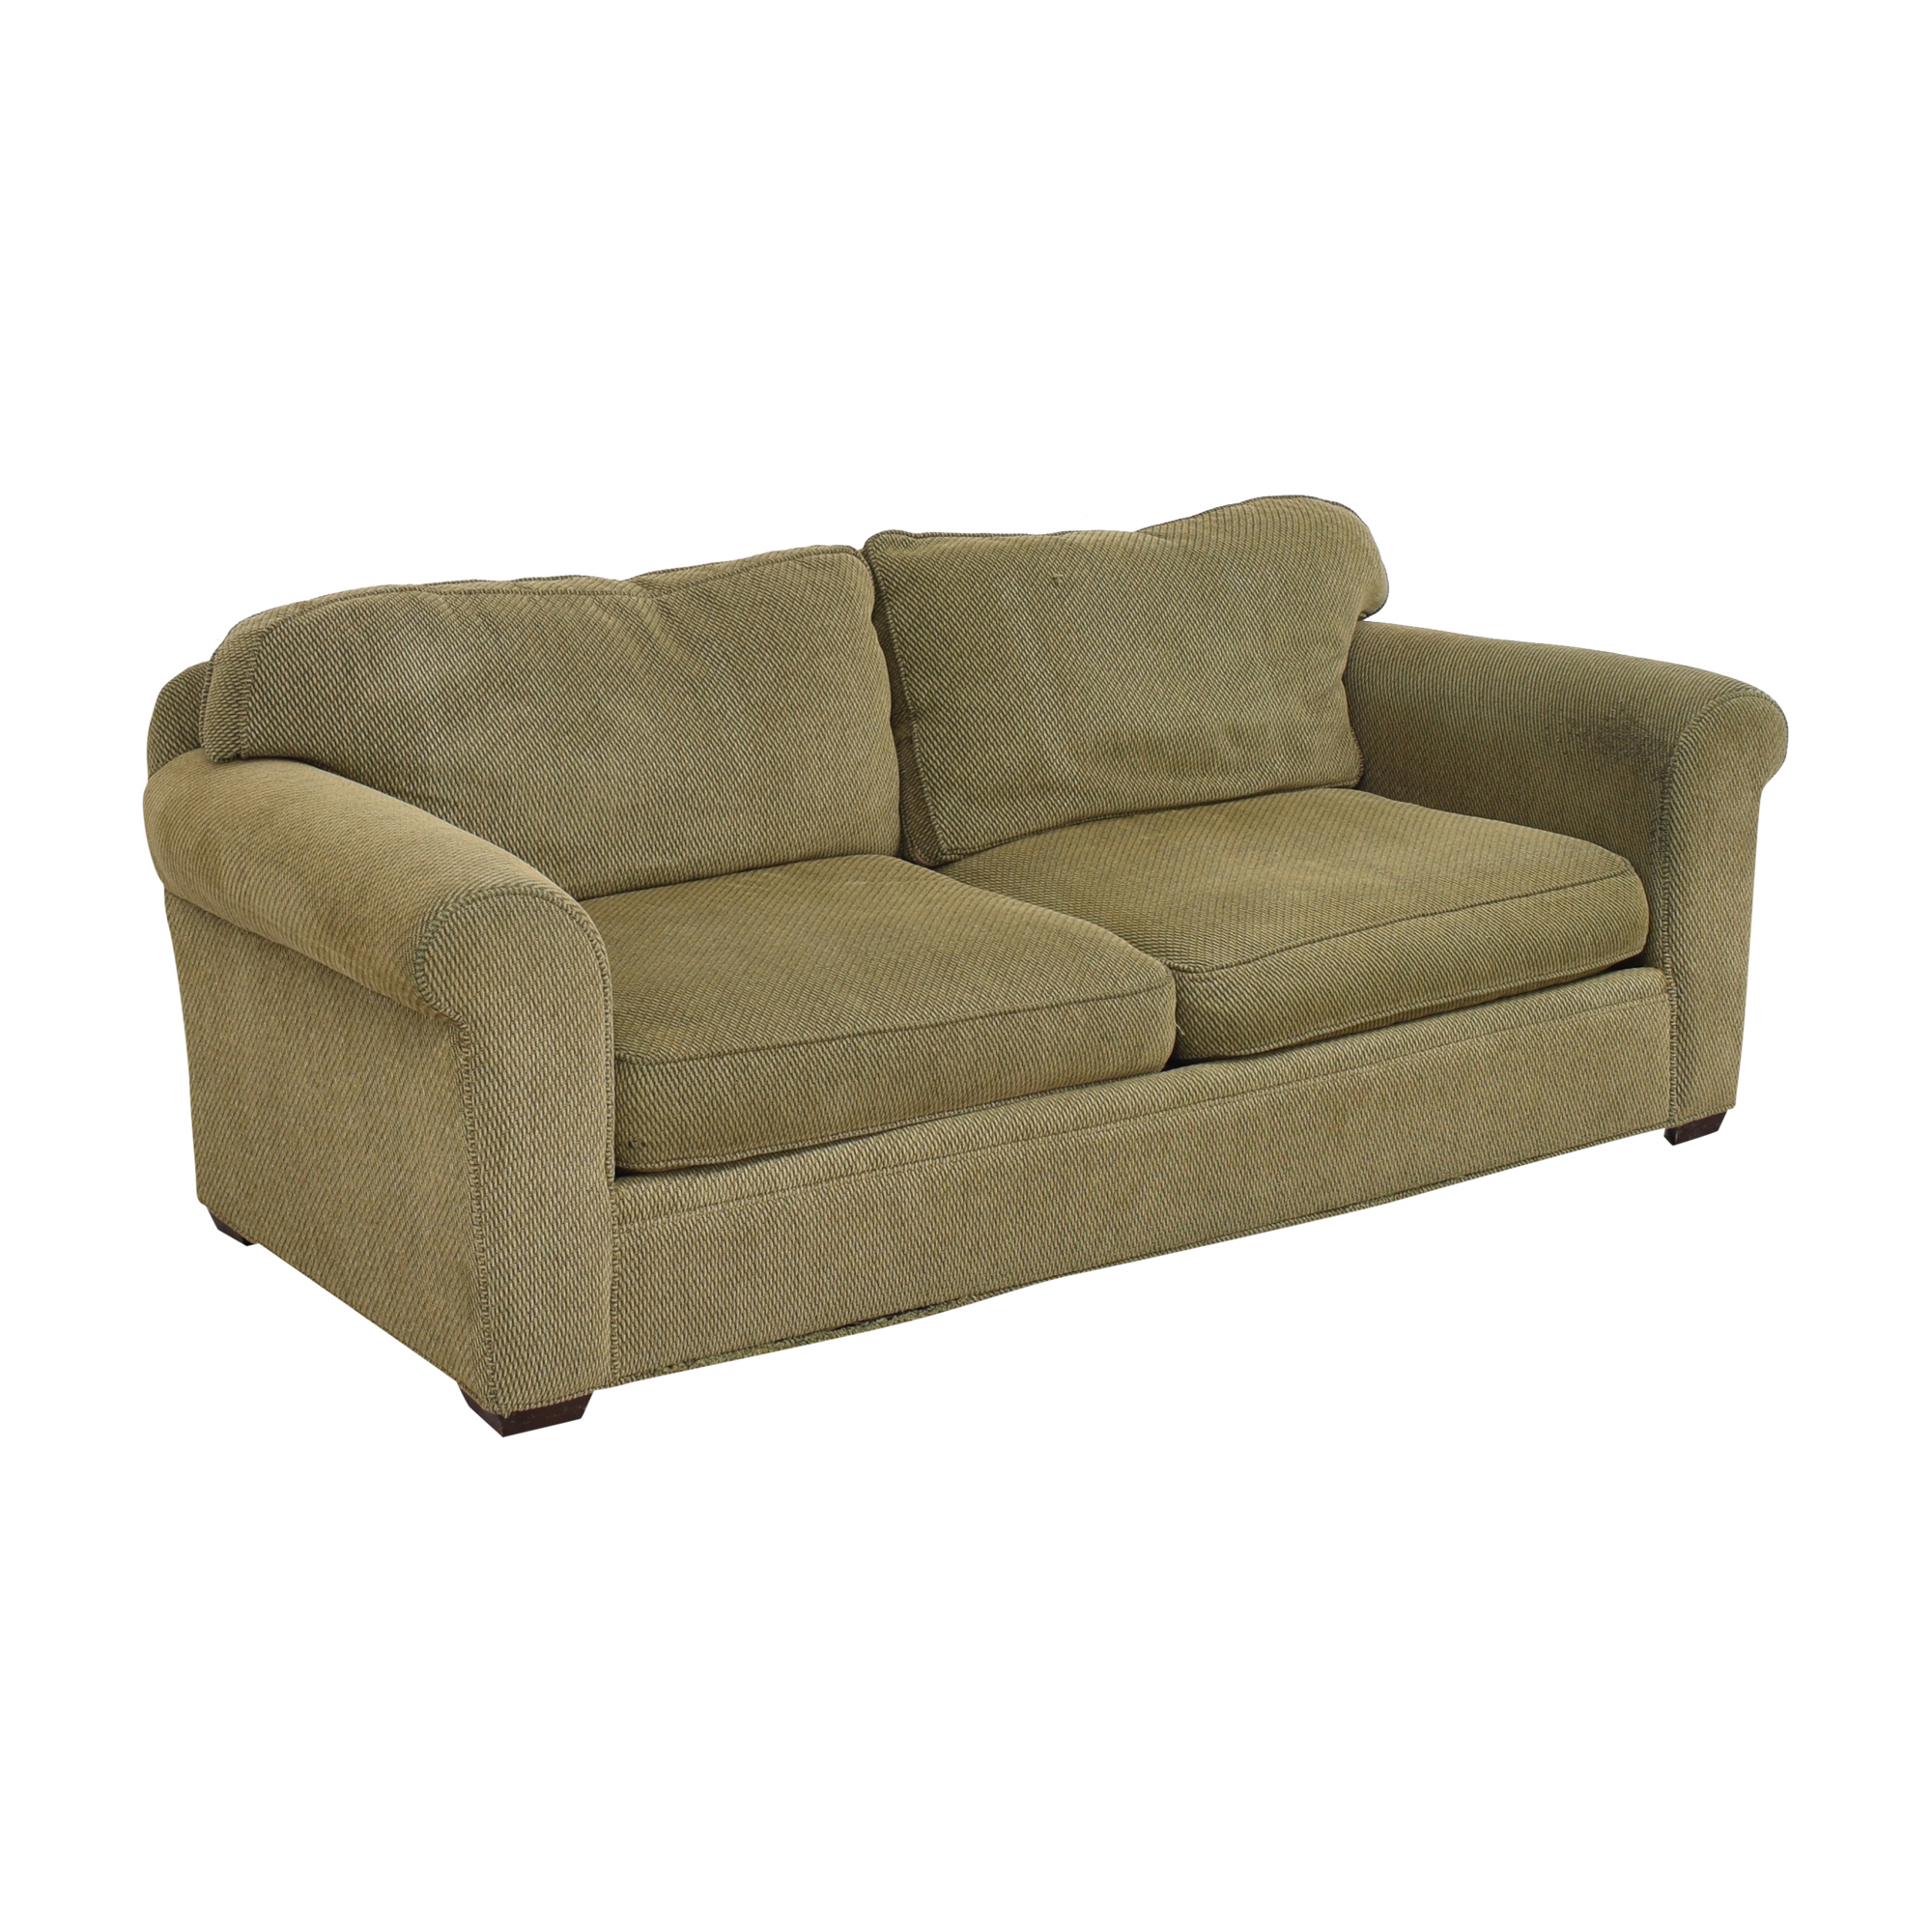 Crate & Barrel Crate & Barrel Two Cushion Sofa green